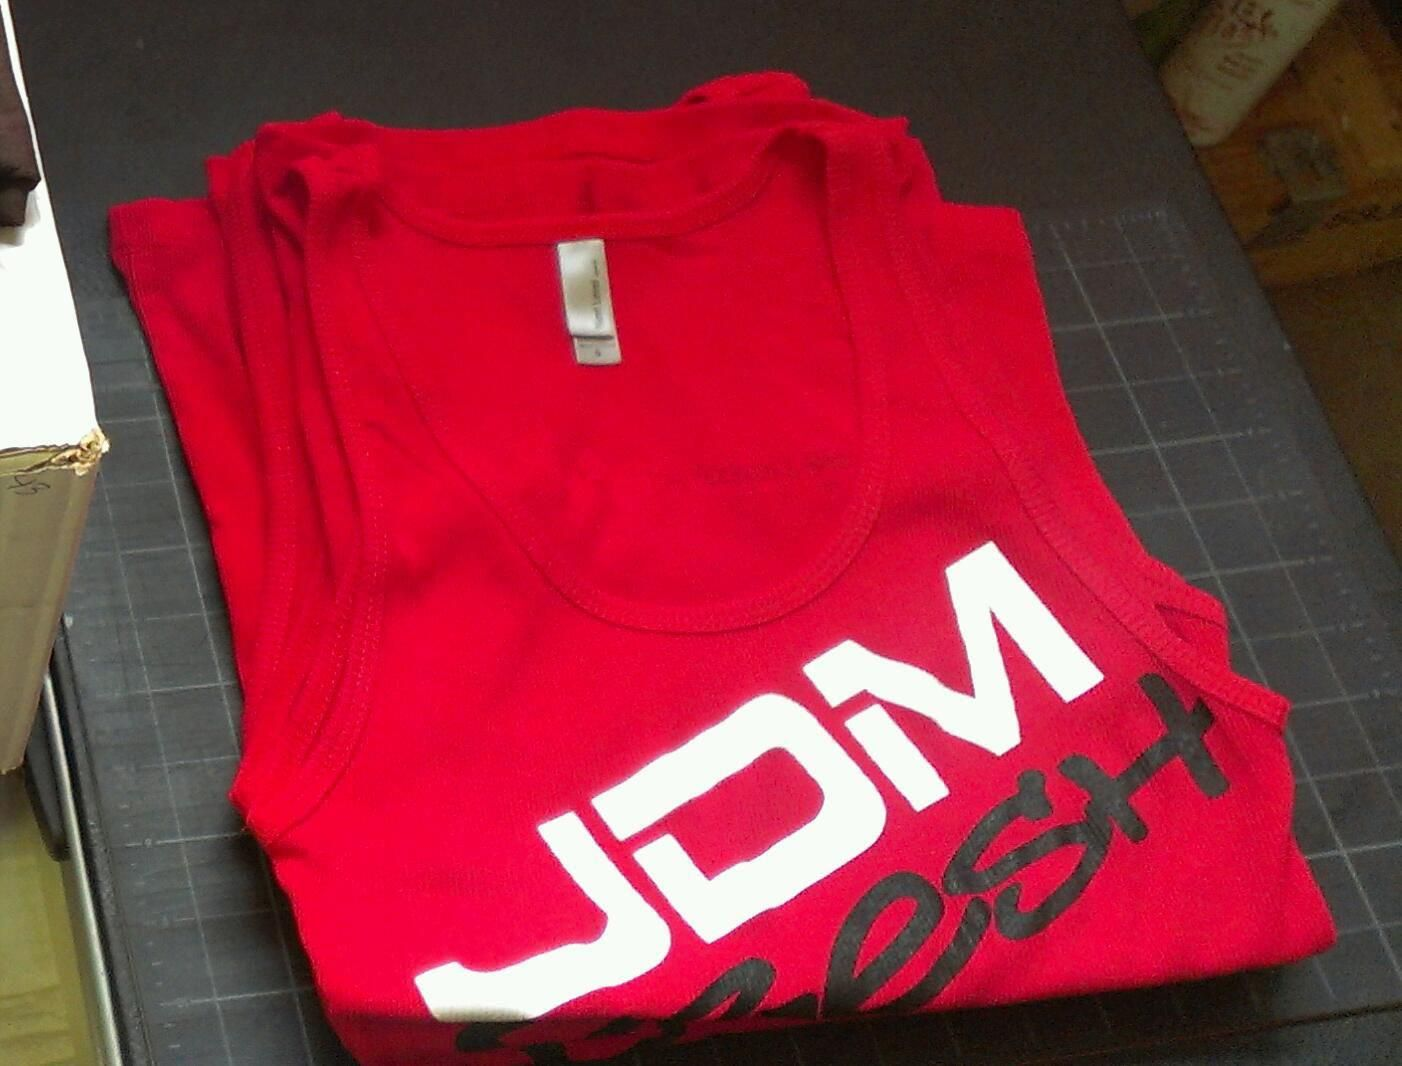 also available in Red! Tank tops are made by next level